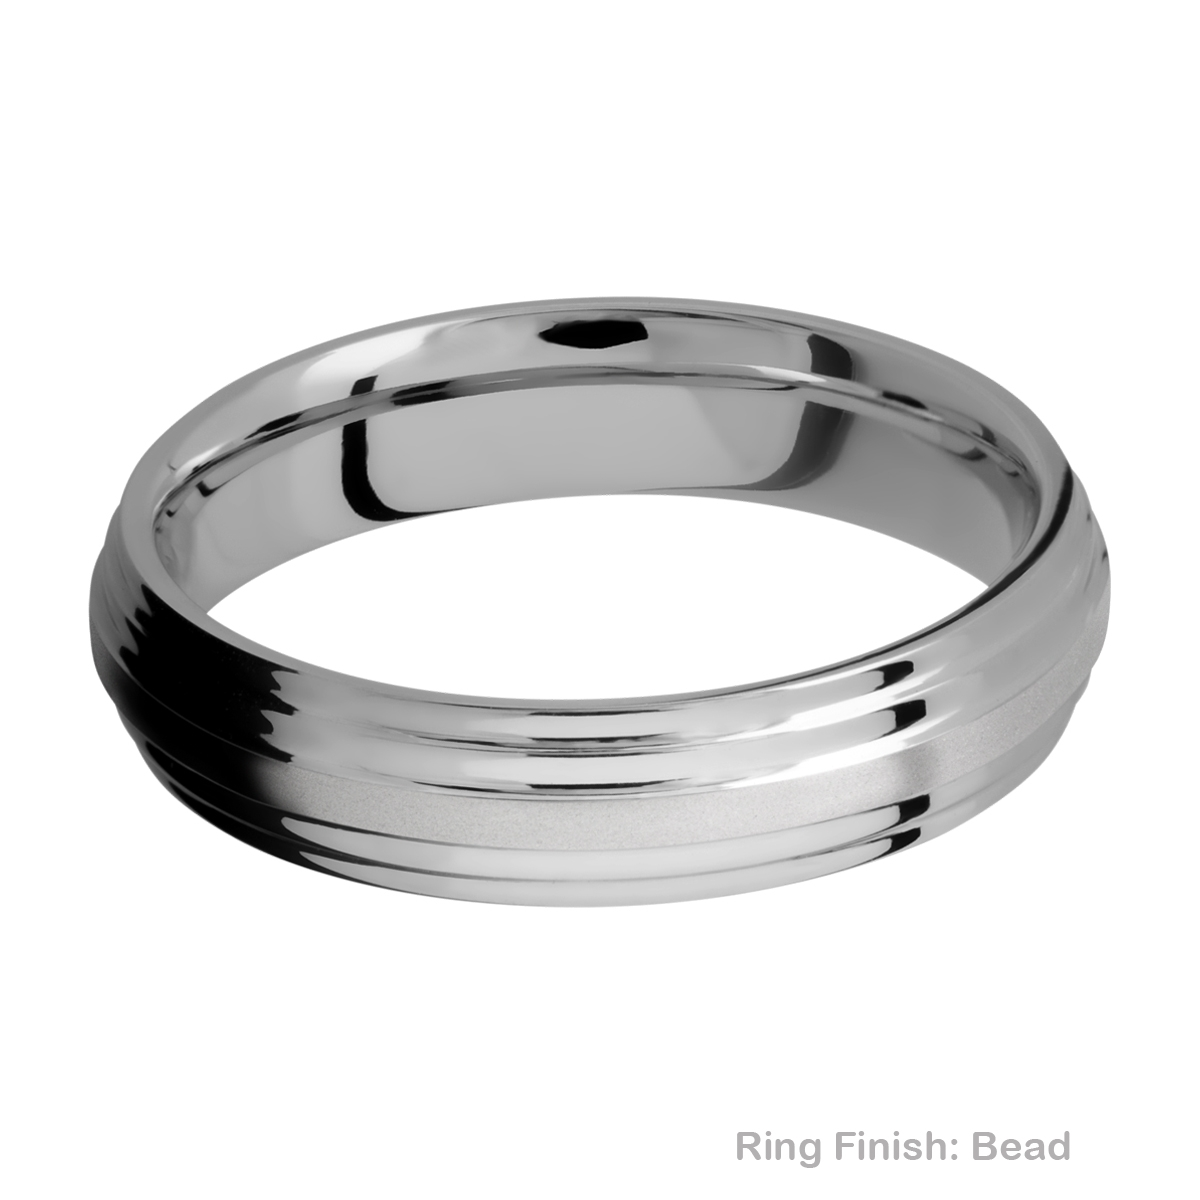 Lashbrook 5F2S Titanium Wedding Ring or Band Alternative View 3